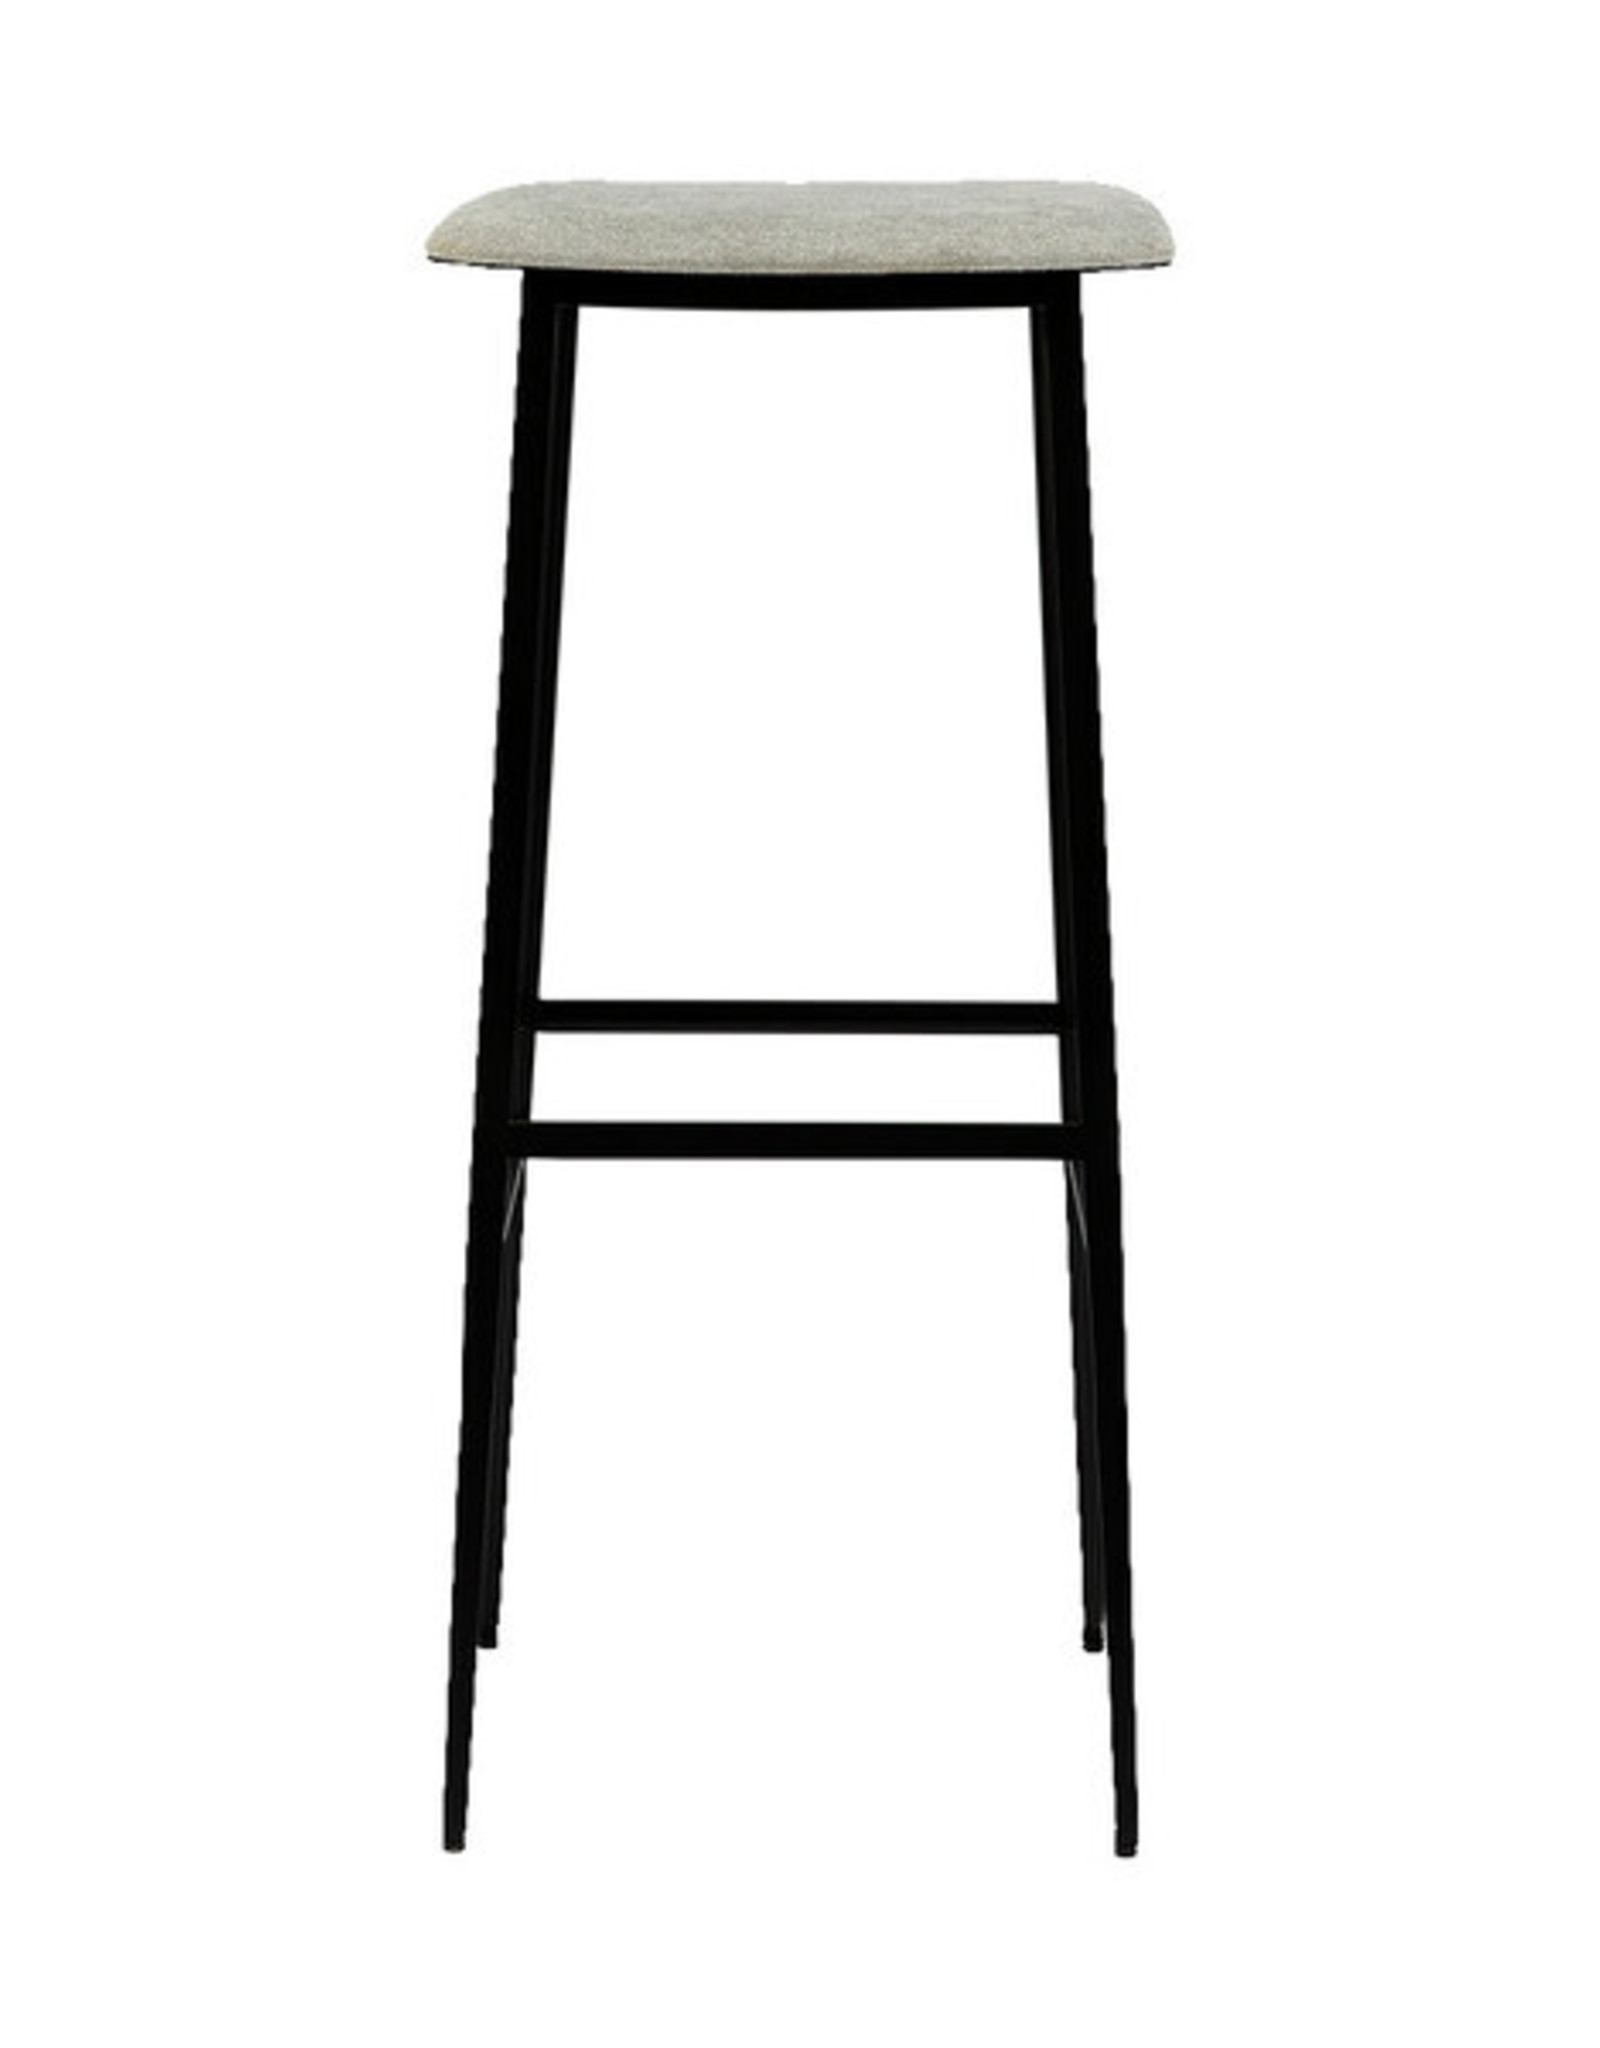 DC bar stool (without backrest) - light grey